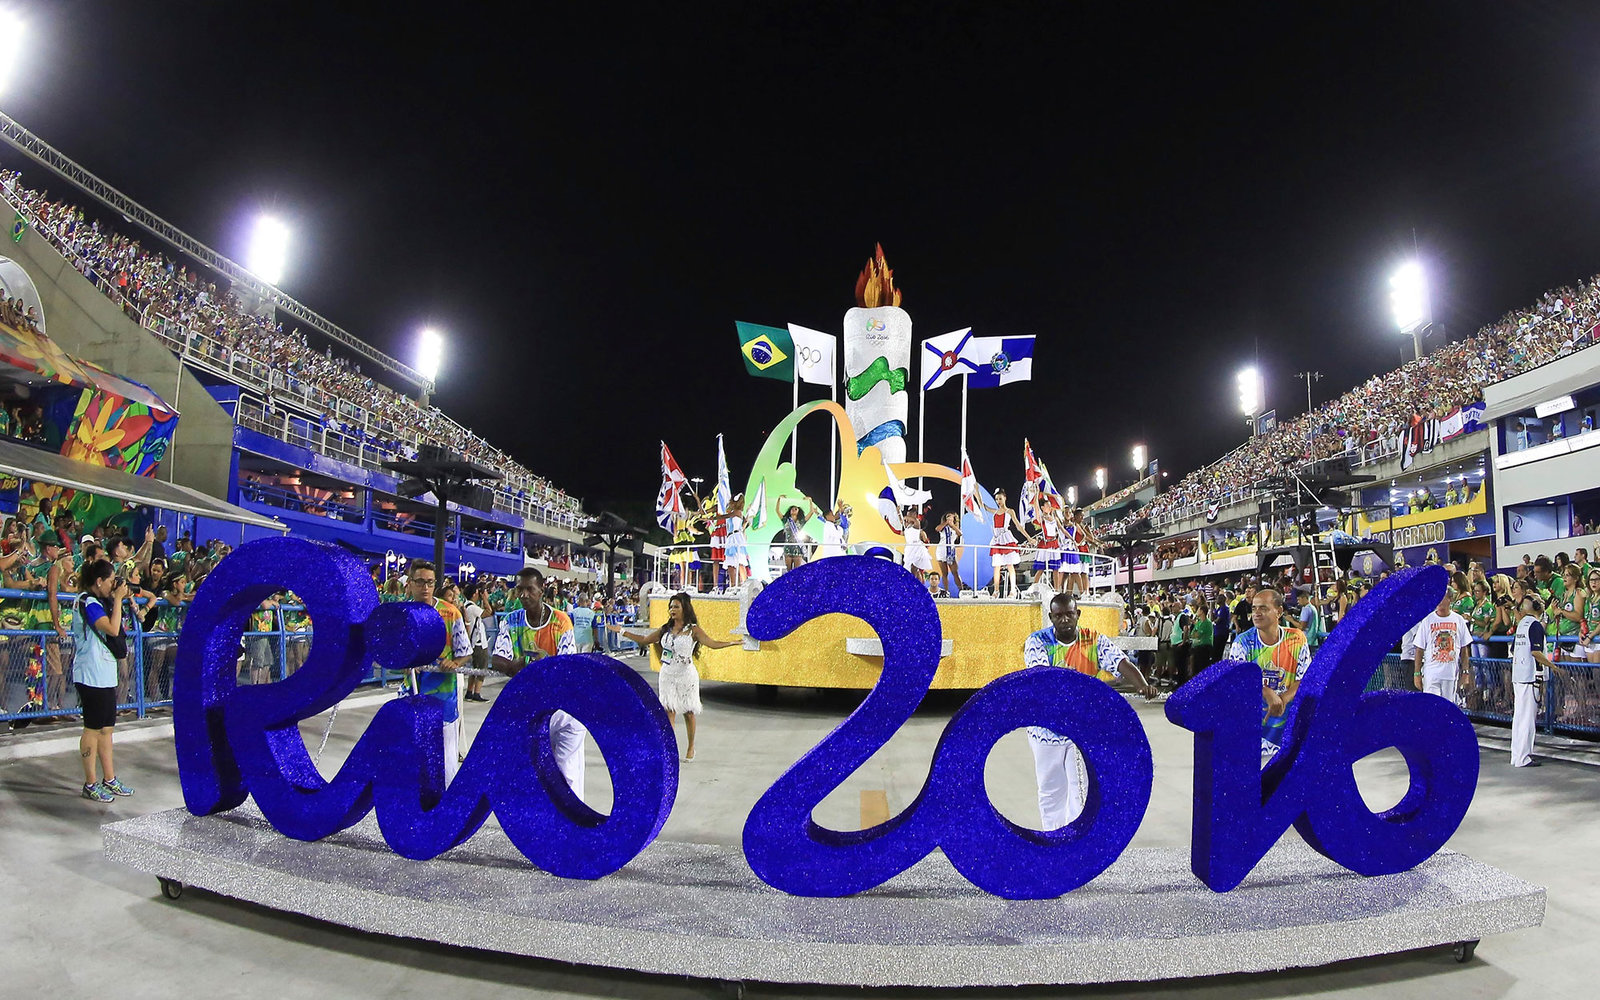 RIO DE JANEIRO, BRAZIL - FEBRUARY 08:  A Rio Olympics 2016 car is seen before the first day of parades of the panel's Carnival in Rio de Janeiro on Marques de Sapucai Sambadromo on February 08, 2016 in Rio de Janeiro, Brazil. (Photo by William Volcov/Braz